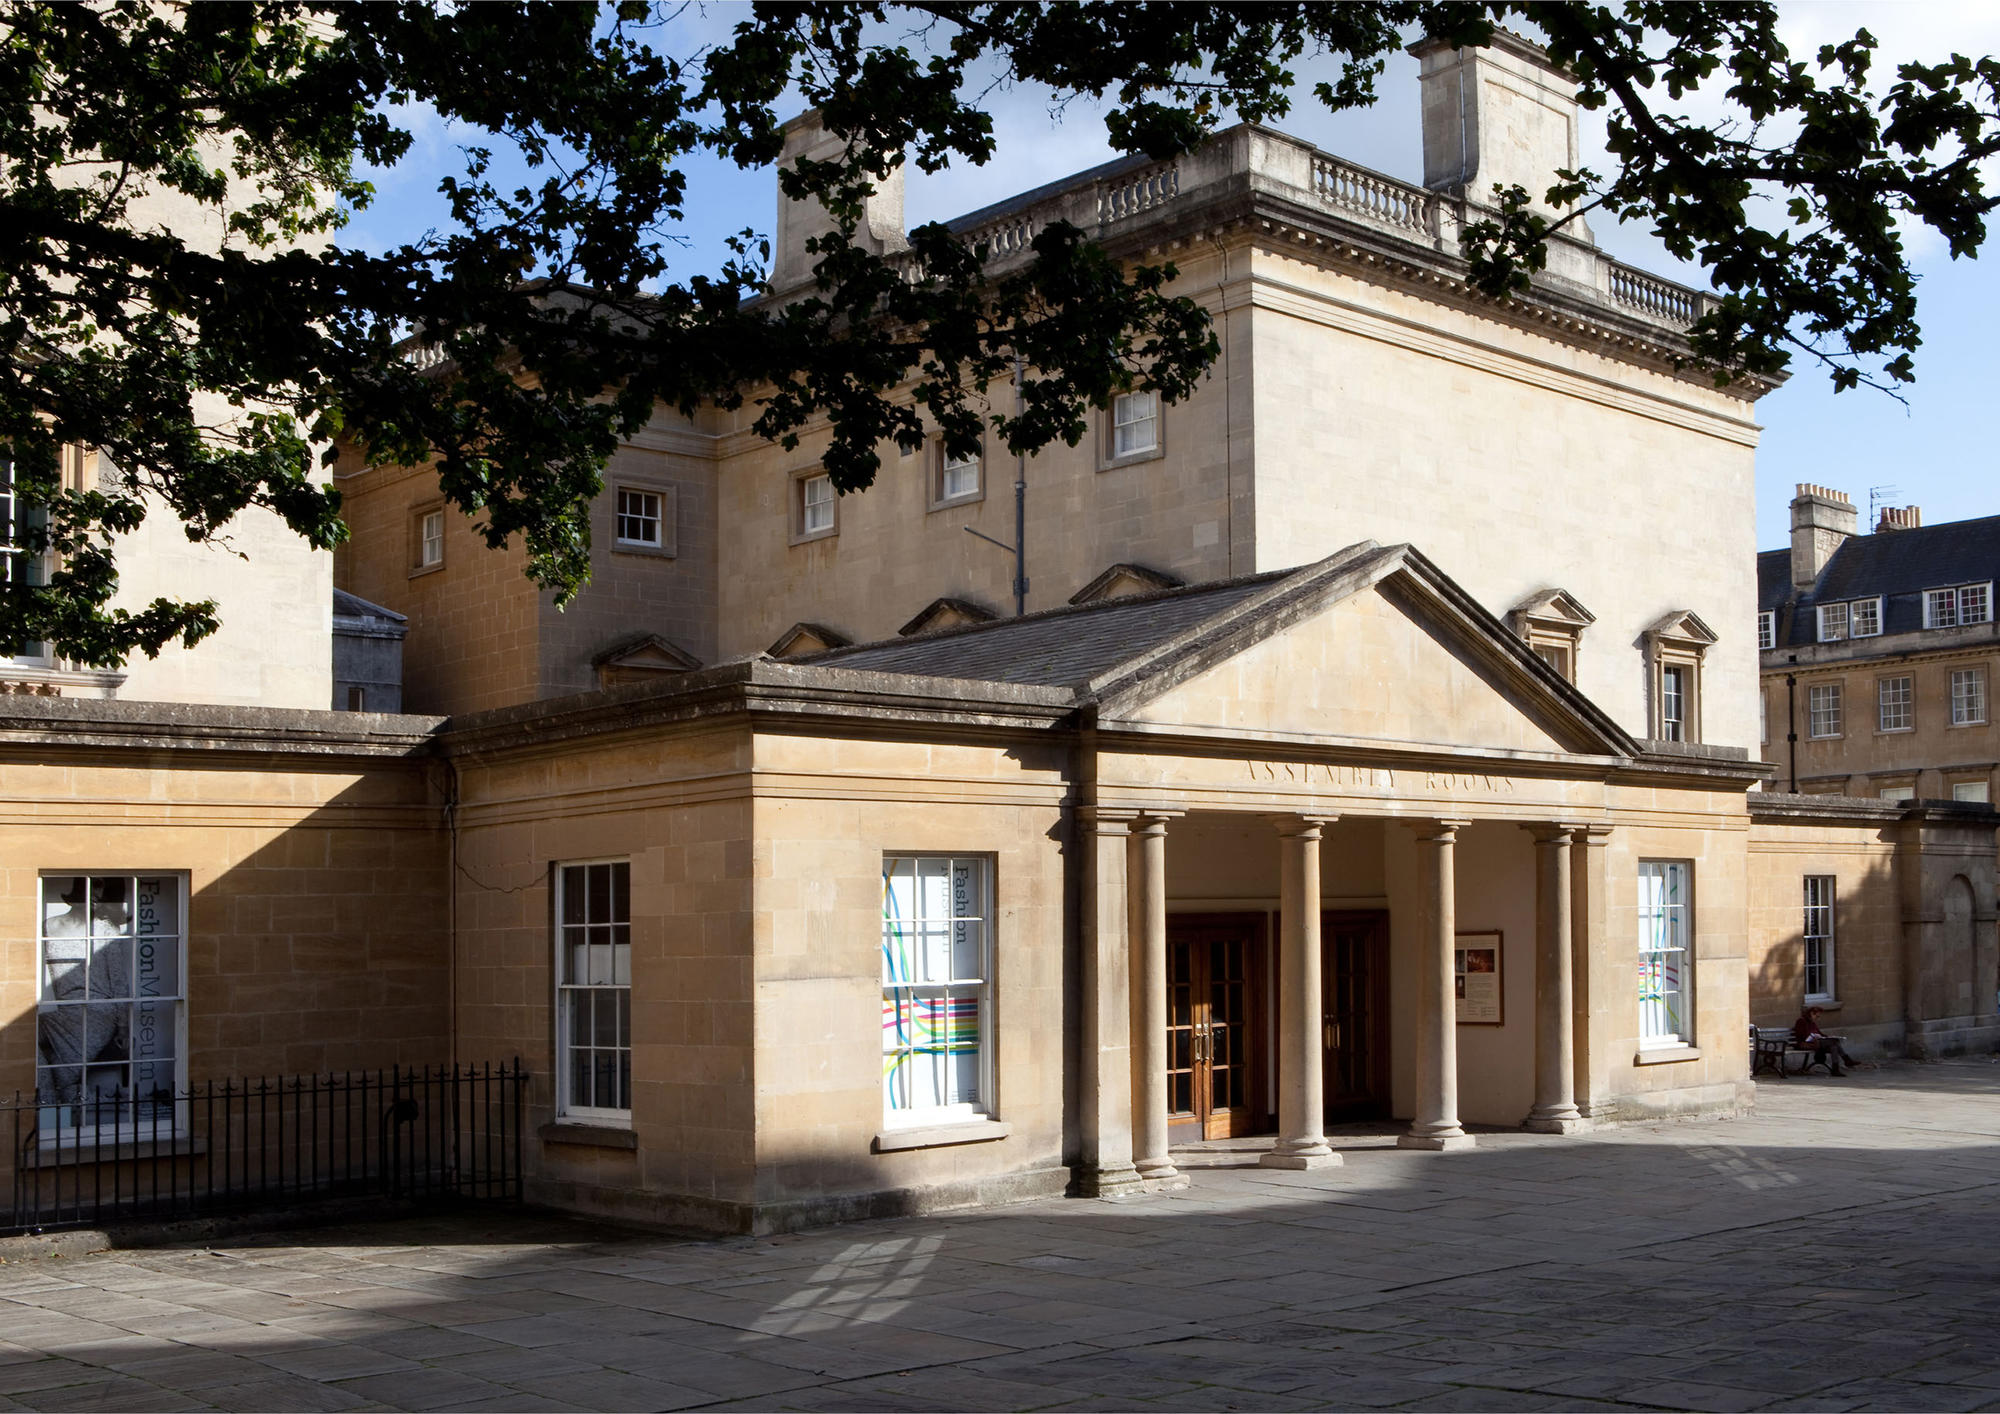 Image: Assembly Rooms exterior